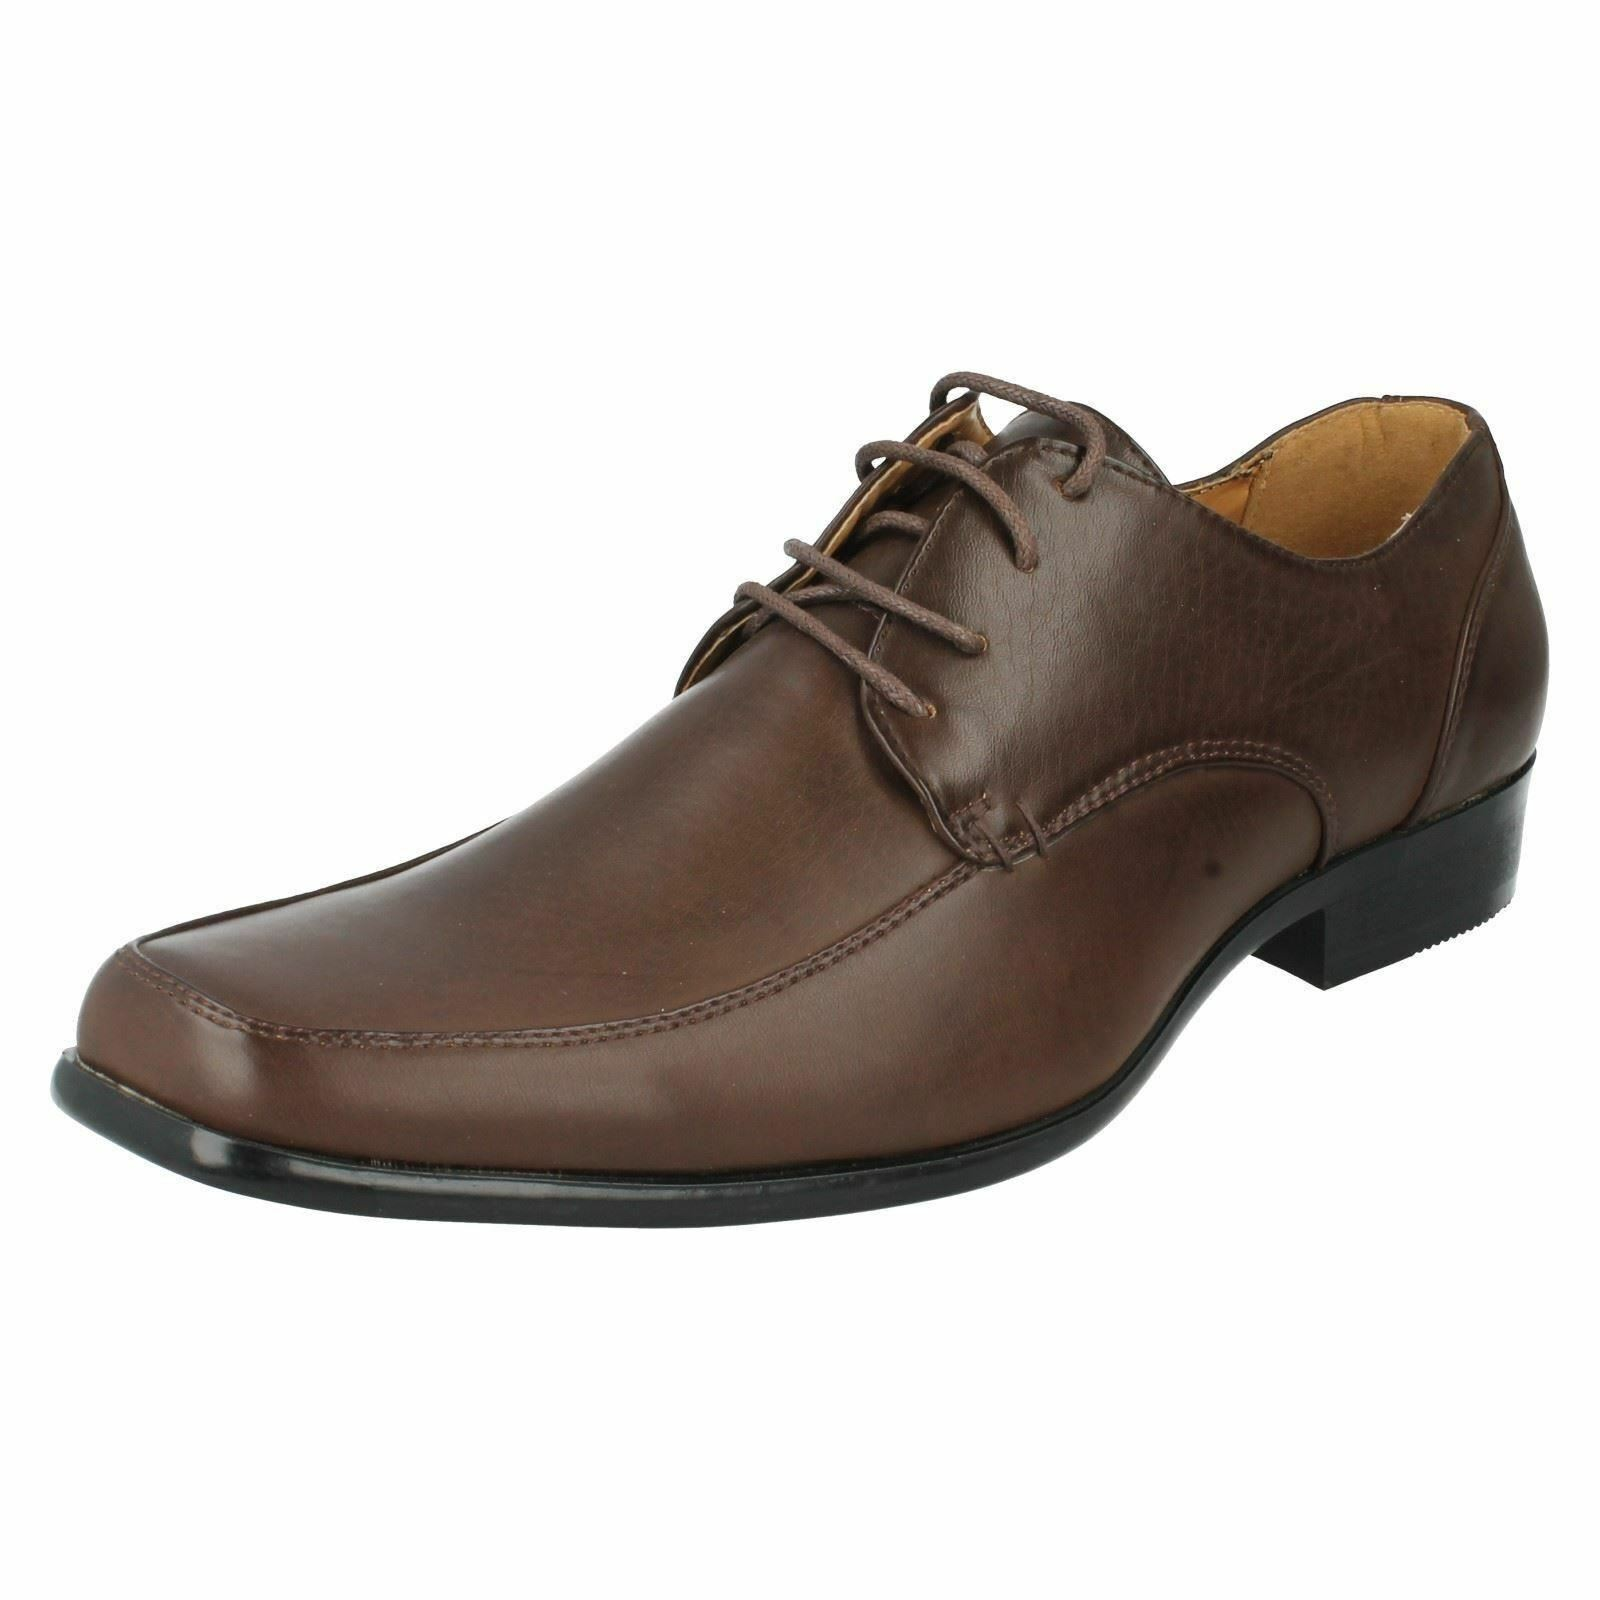 MAVERICK MARRONE a2r065 UOMO SIMILPELLE MARRONE MAVERICK Scarpe stringate (64b) ( 7c8325